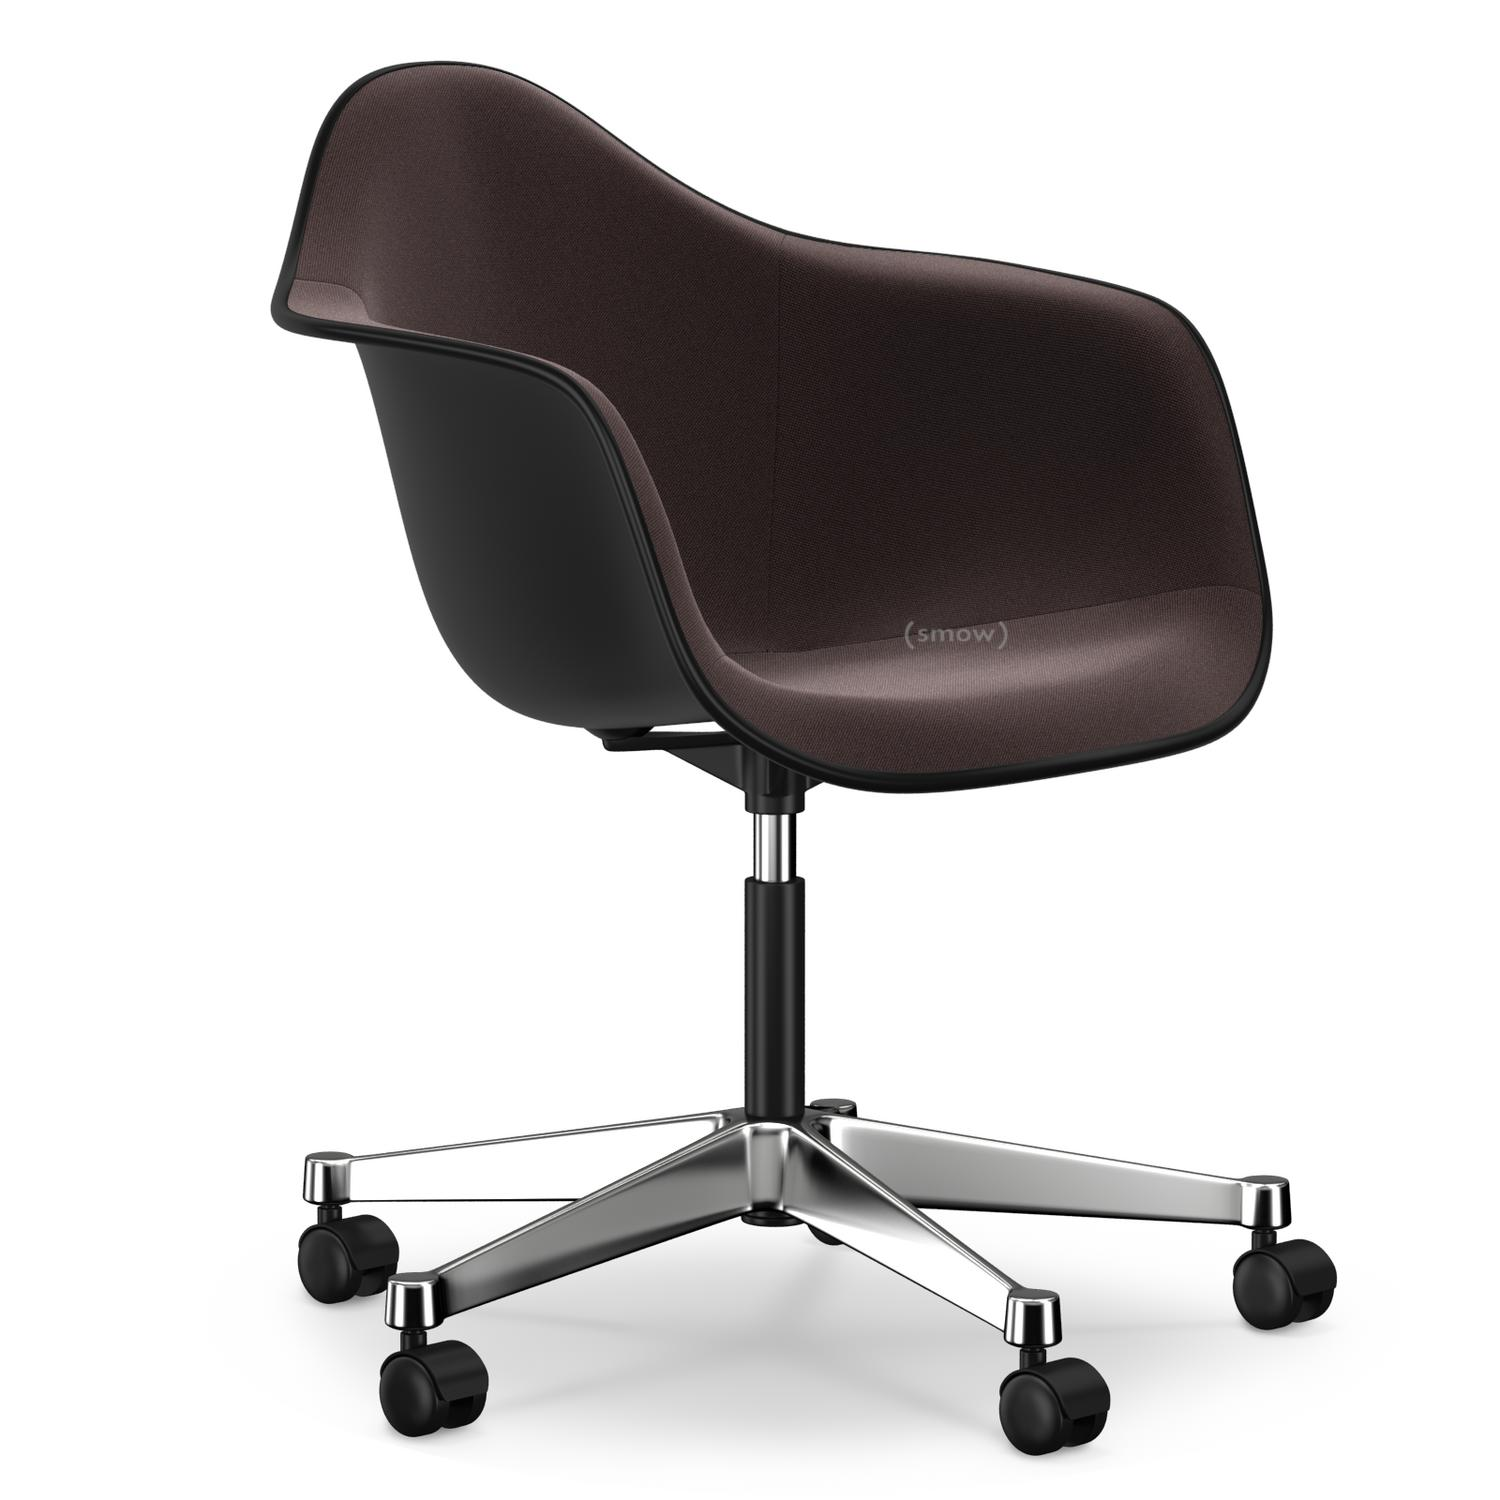 vitra eames plastic armchair pacc basic dark with full upholstery nero moor brown by. Black Bedroom Furniture Sets. Home Design Ideas